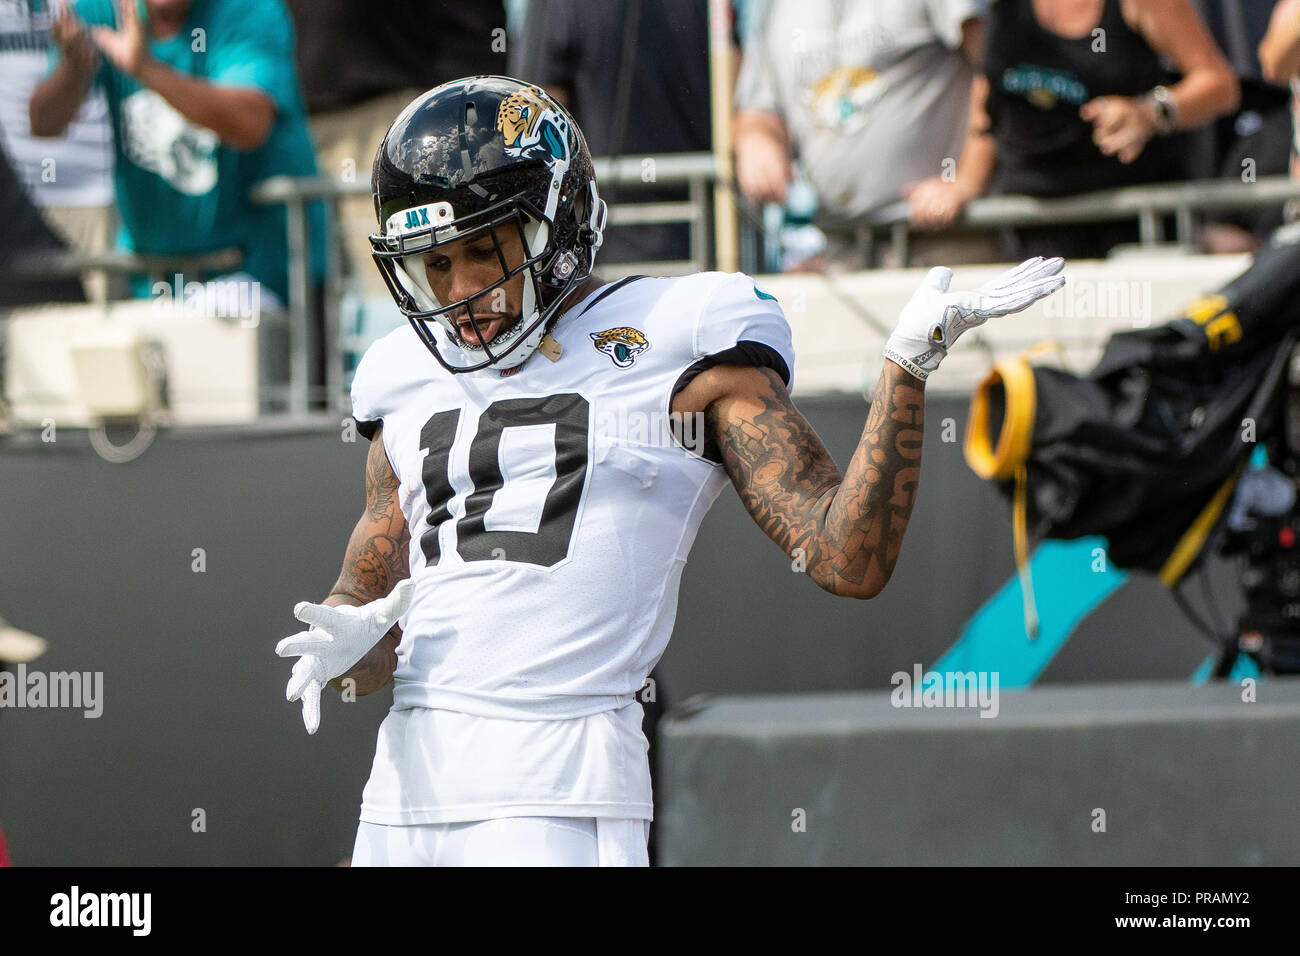 newest 0d3c8 98fe3 Jacksonville, FL, USA. 30th Sep, 2018. Jacksonville Jaguars ...